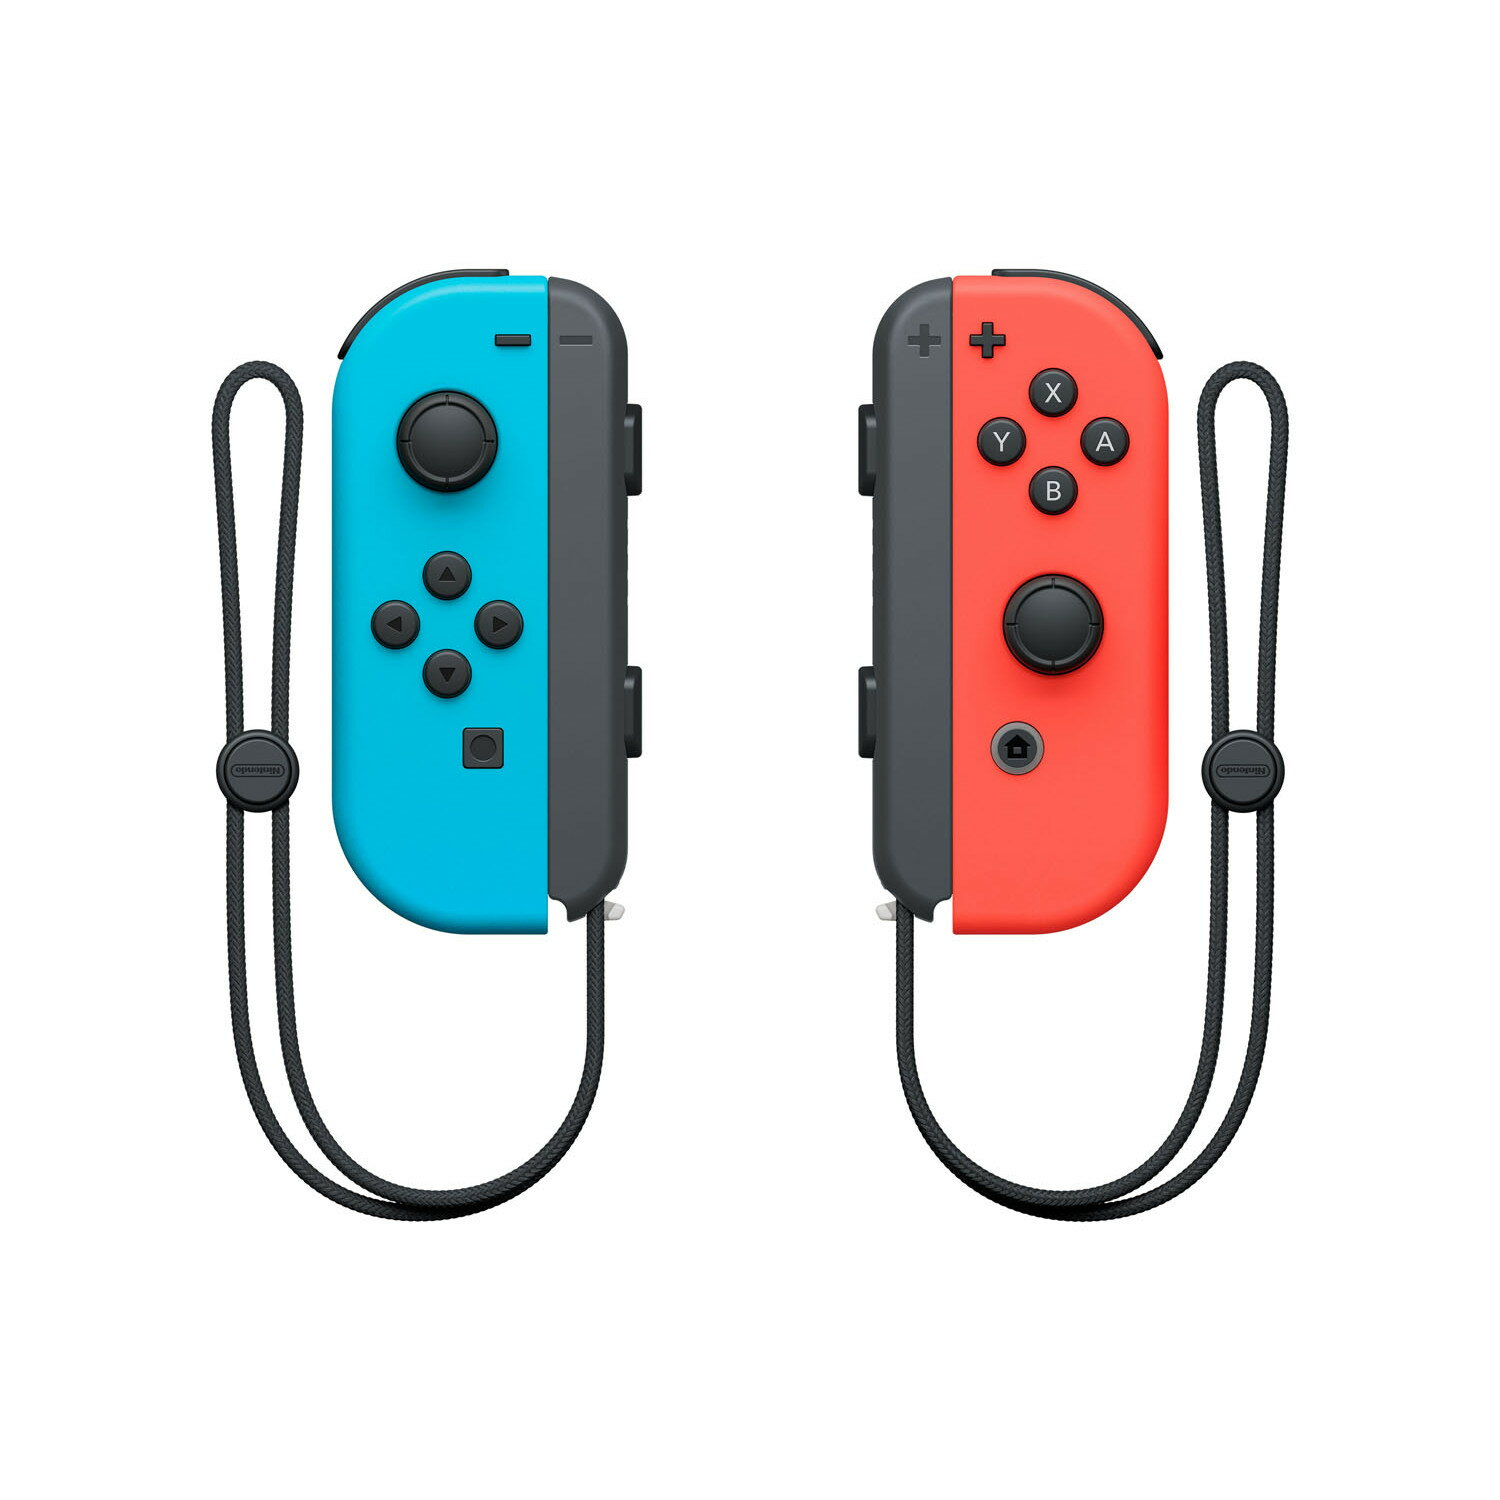 Nintendo Switch - Joy-Con - Neon Red/Neon Blue - (Left/Right) Controllers 1